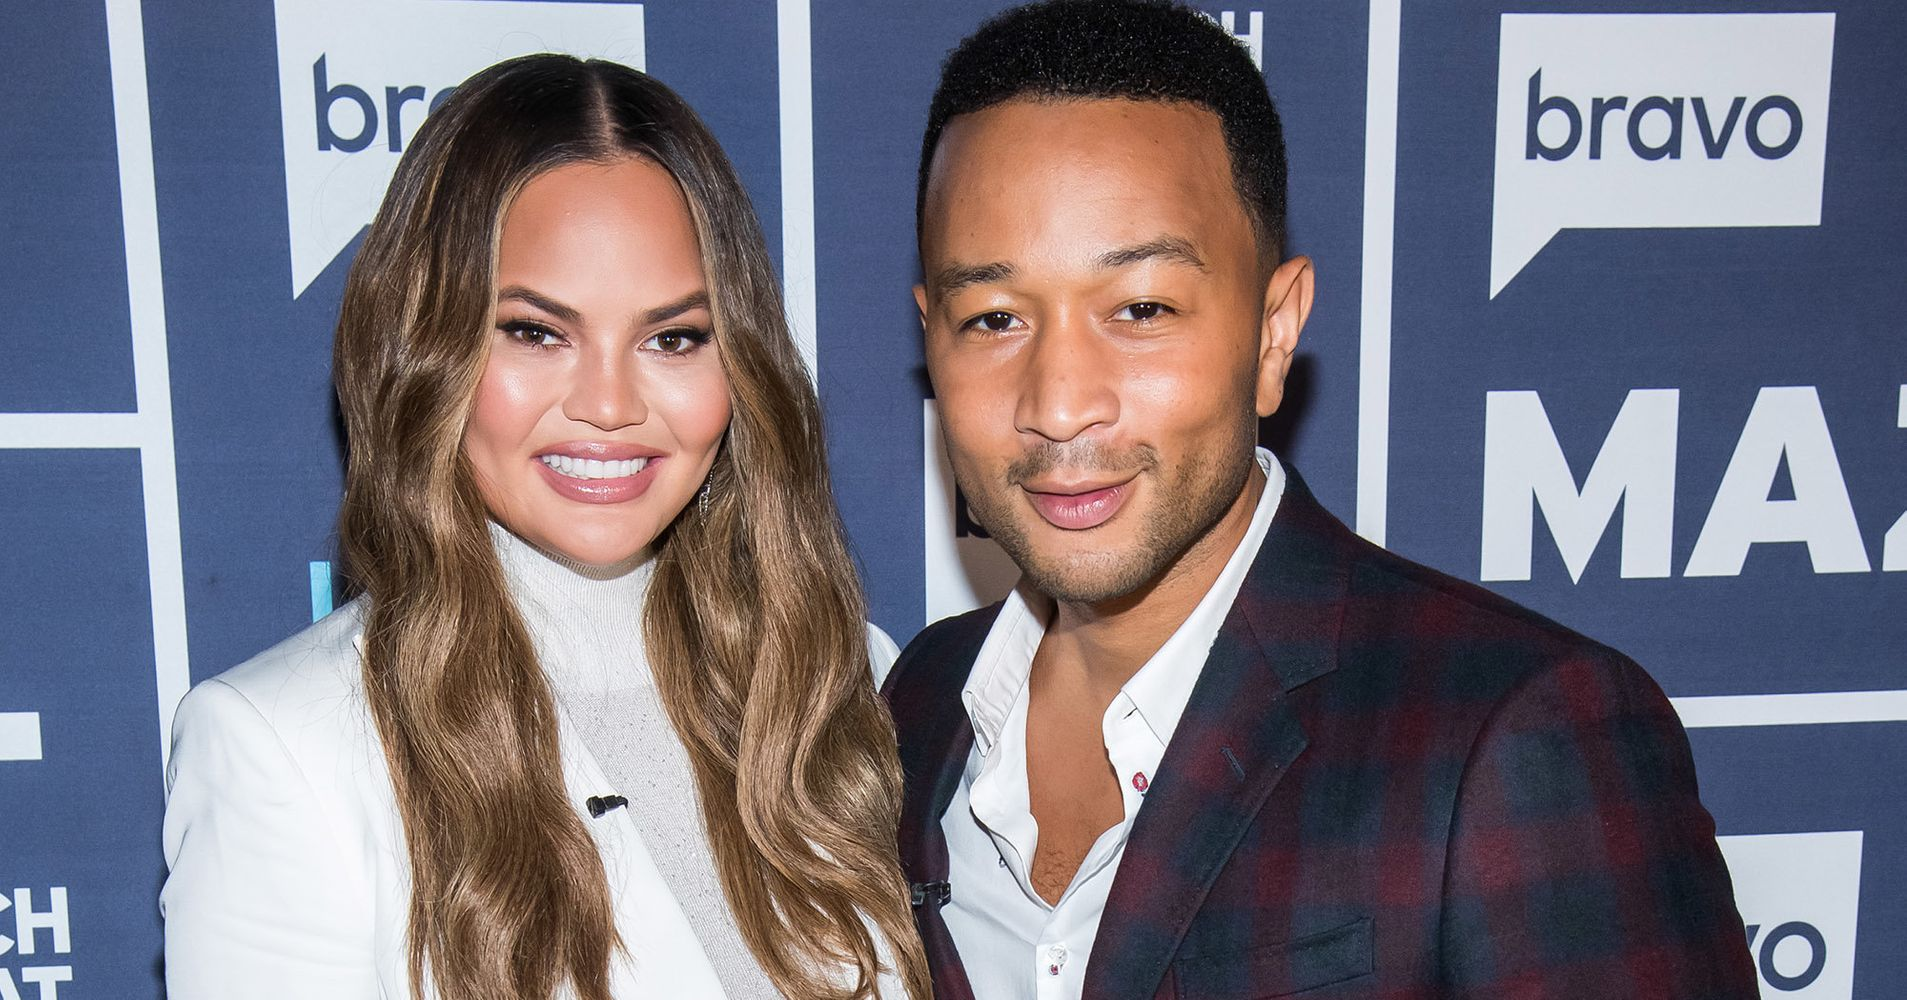 John Legend Says He Doesn't Get Much Input On Chrissy Teigen's Hilarious Tweets